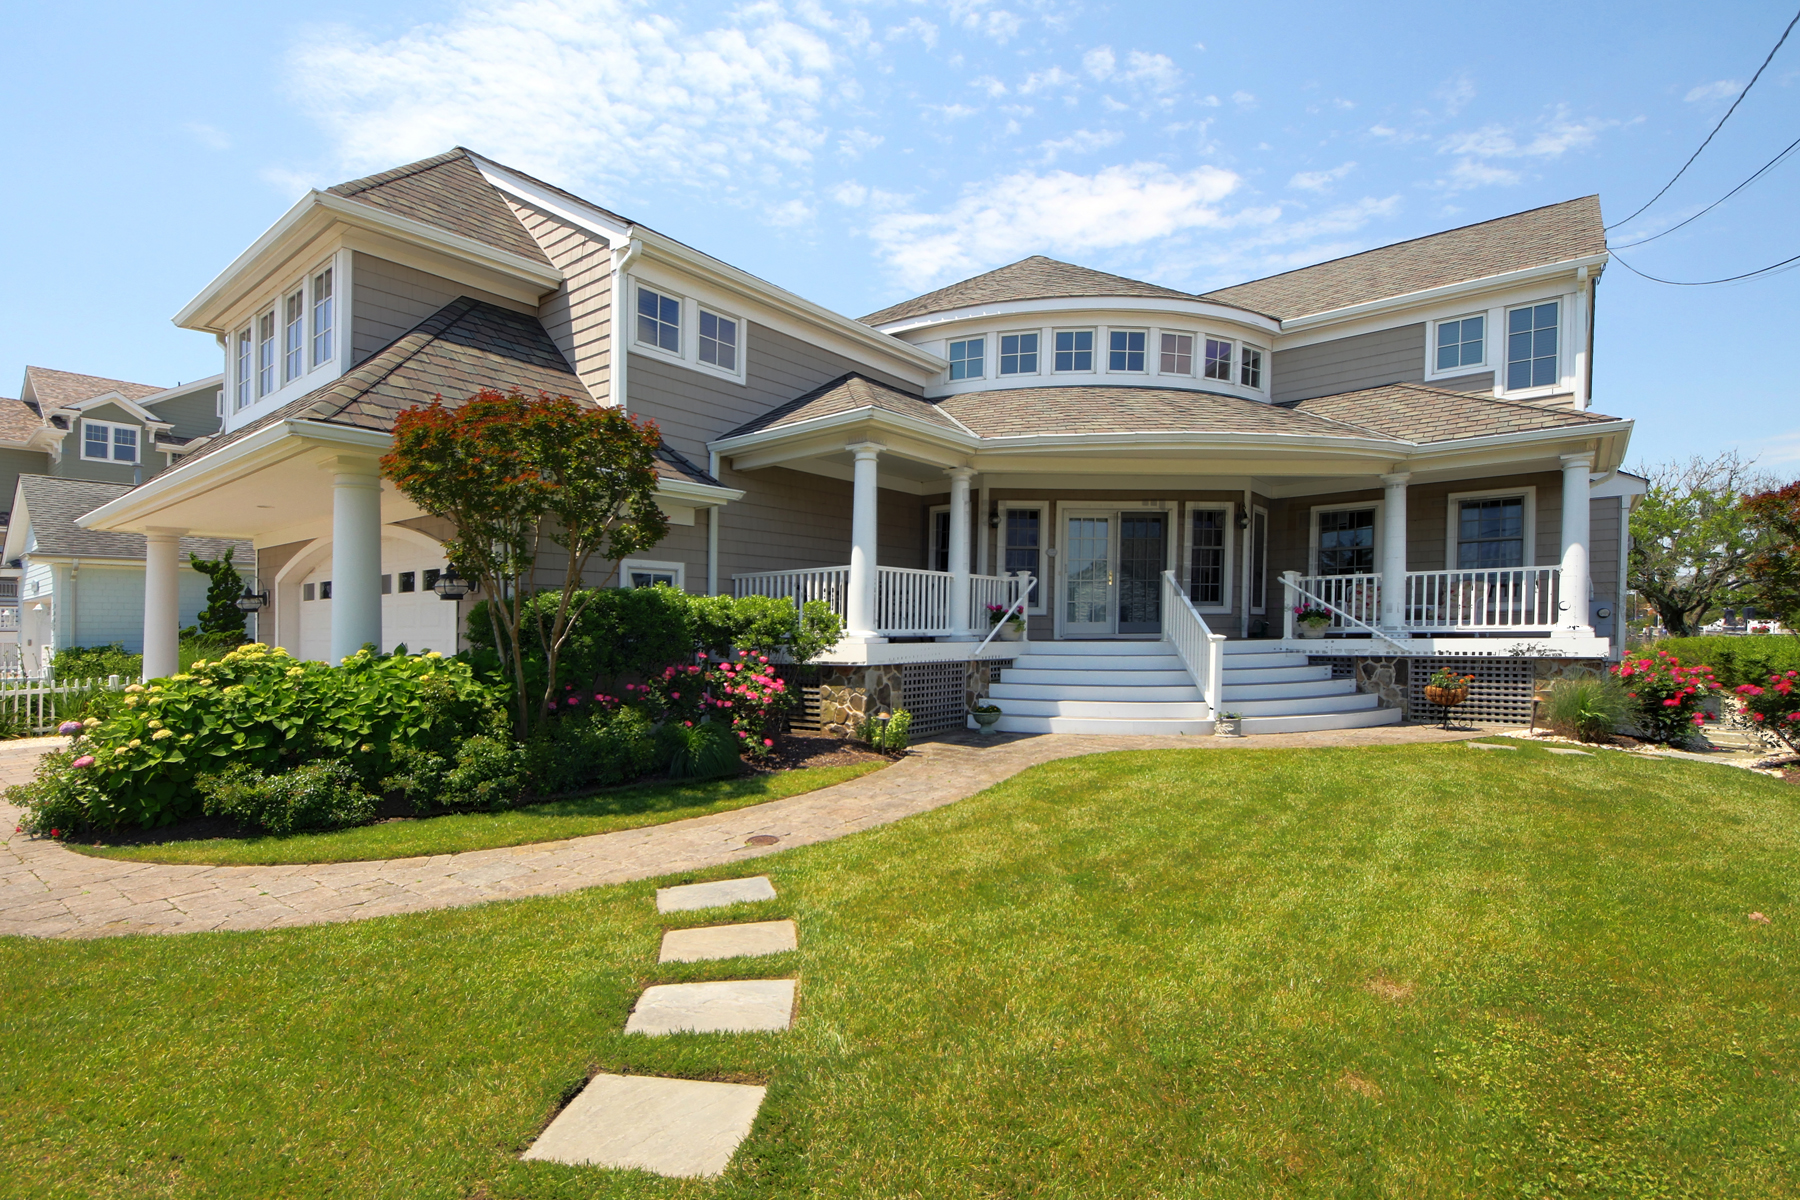 Single Family Home for Sale at Spectacular Custom Home With Open Bay Views 3651 Bayside Court Normandy Beach, New Jersey 08739 United States